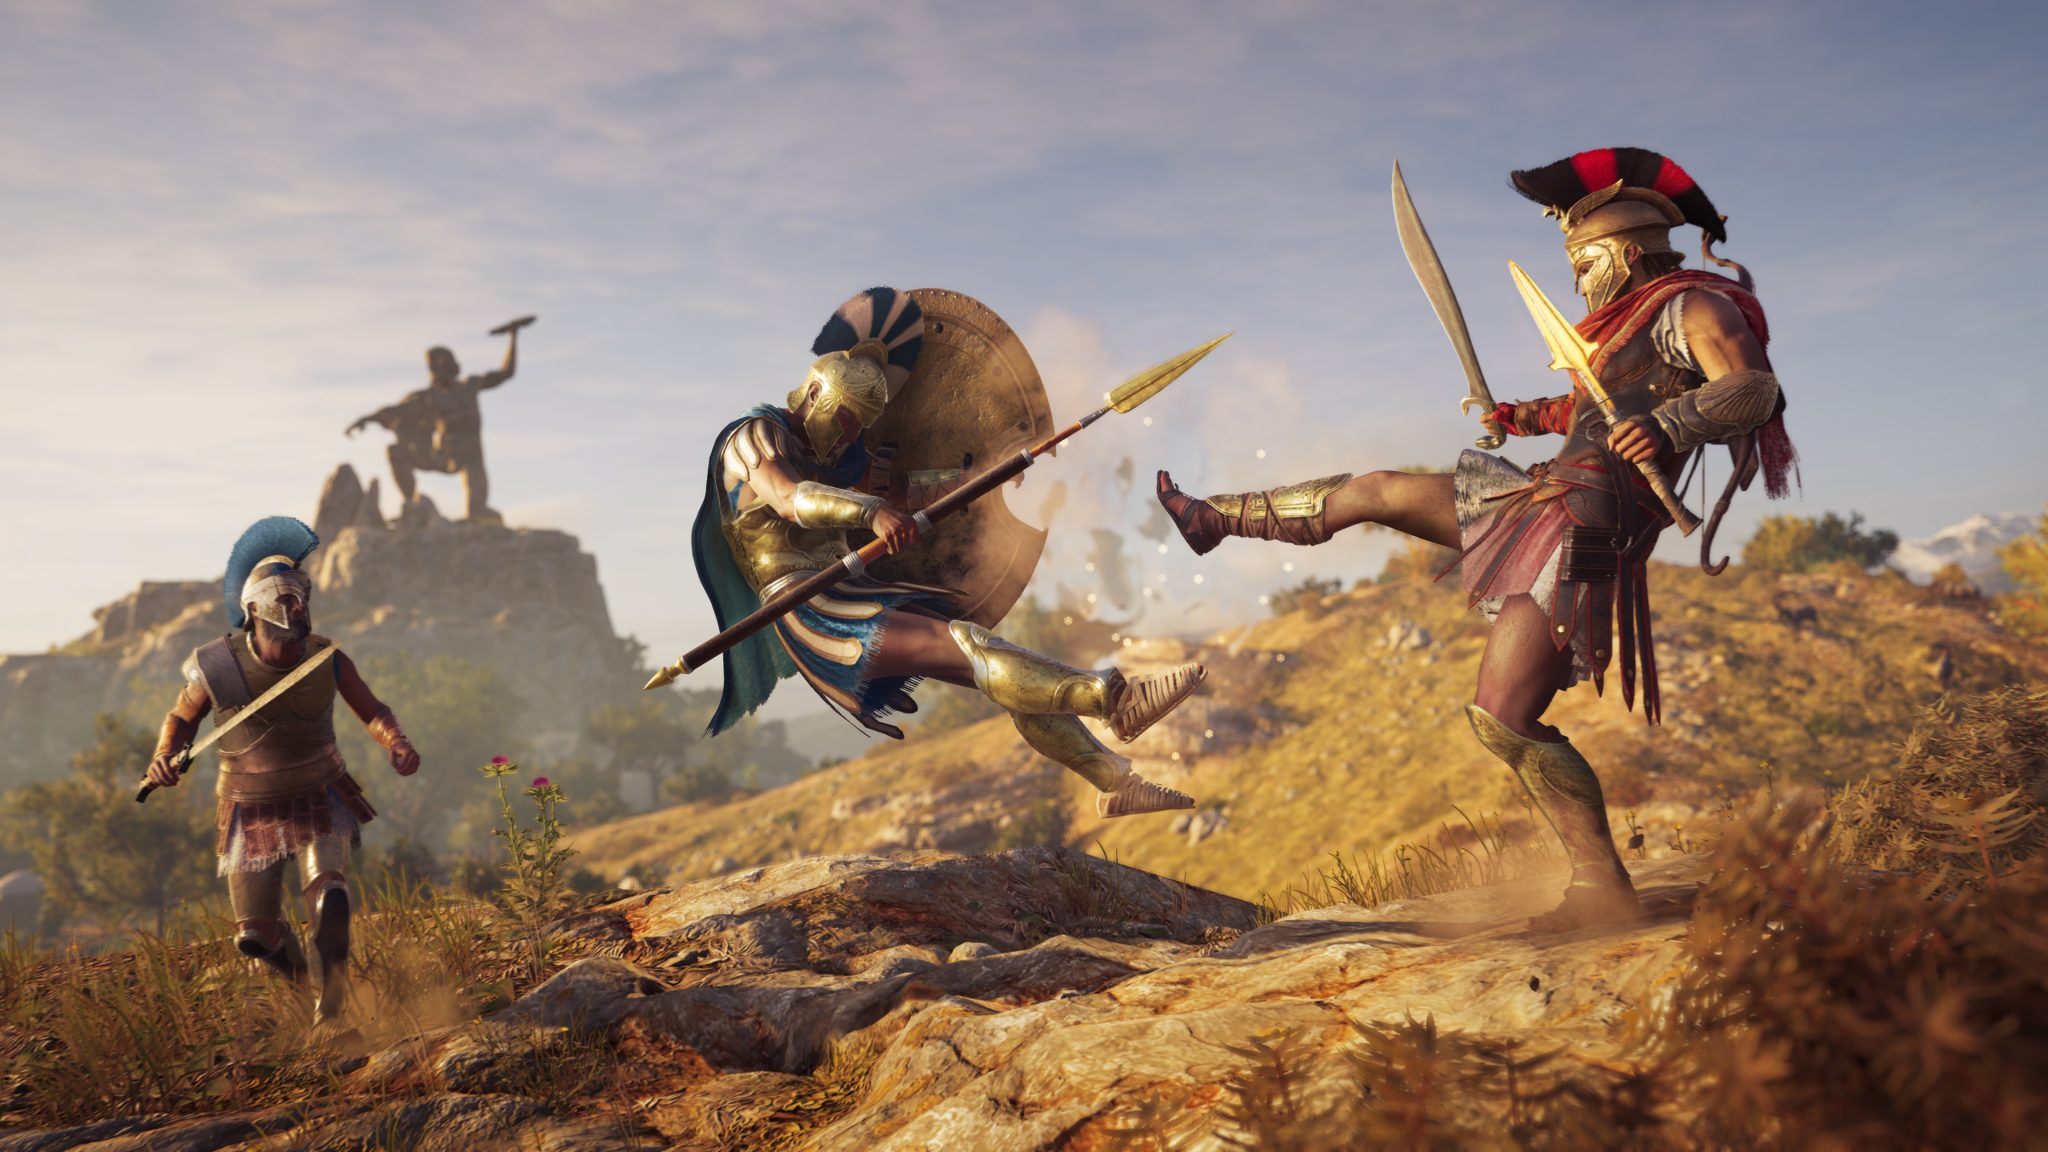 Assassin's Creed Odyssey AC Odyssey Xbox One X PlayStation 4 Pro PS4 Pro PC Ubisoft Test Kritik Review Sparta